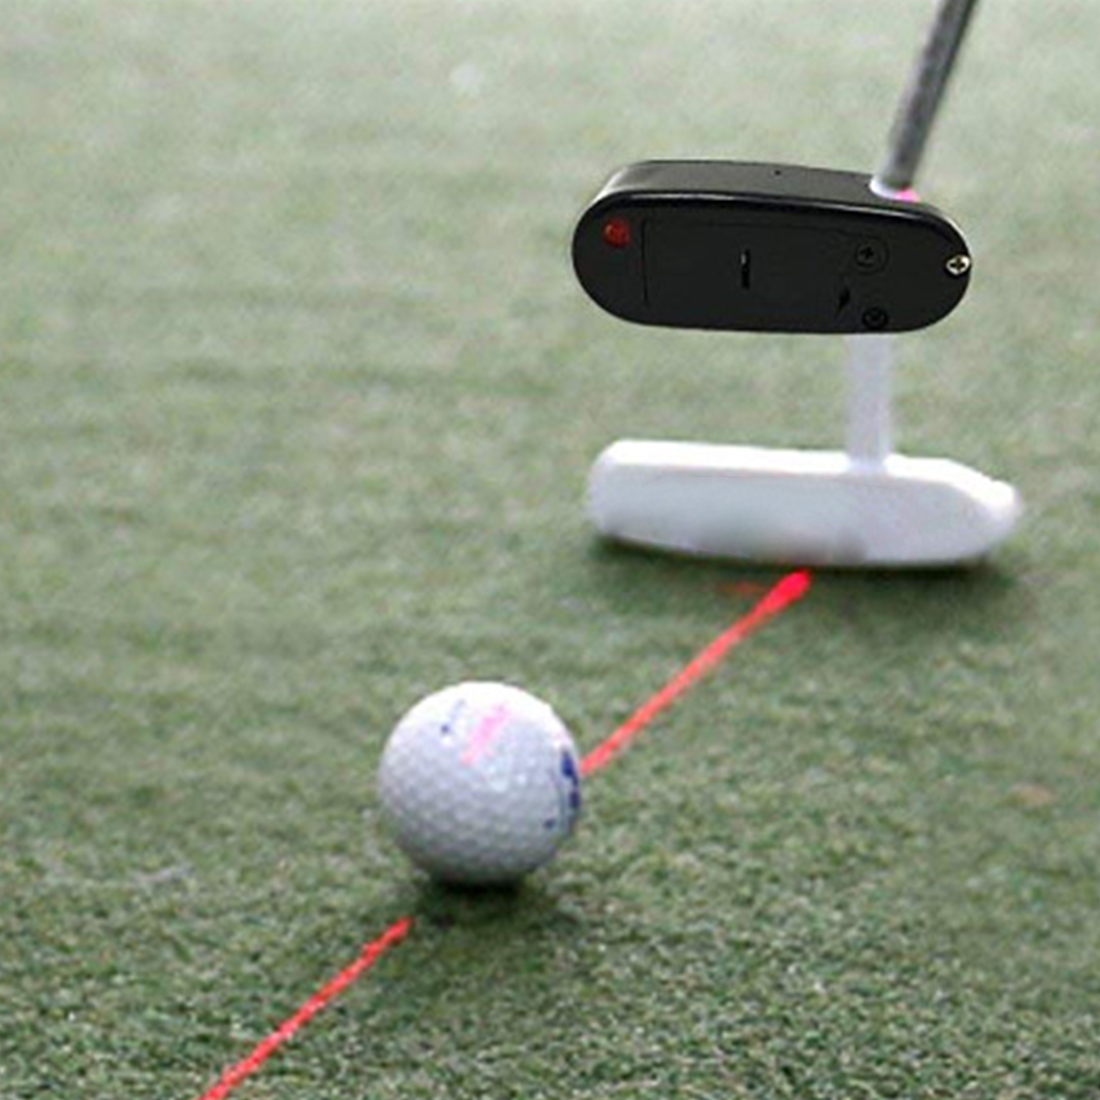 Golf Putter Laser Pointer Putting Practice Aim Line Corrector Improve Aid Training Tool For Markers Without Battery